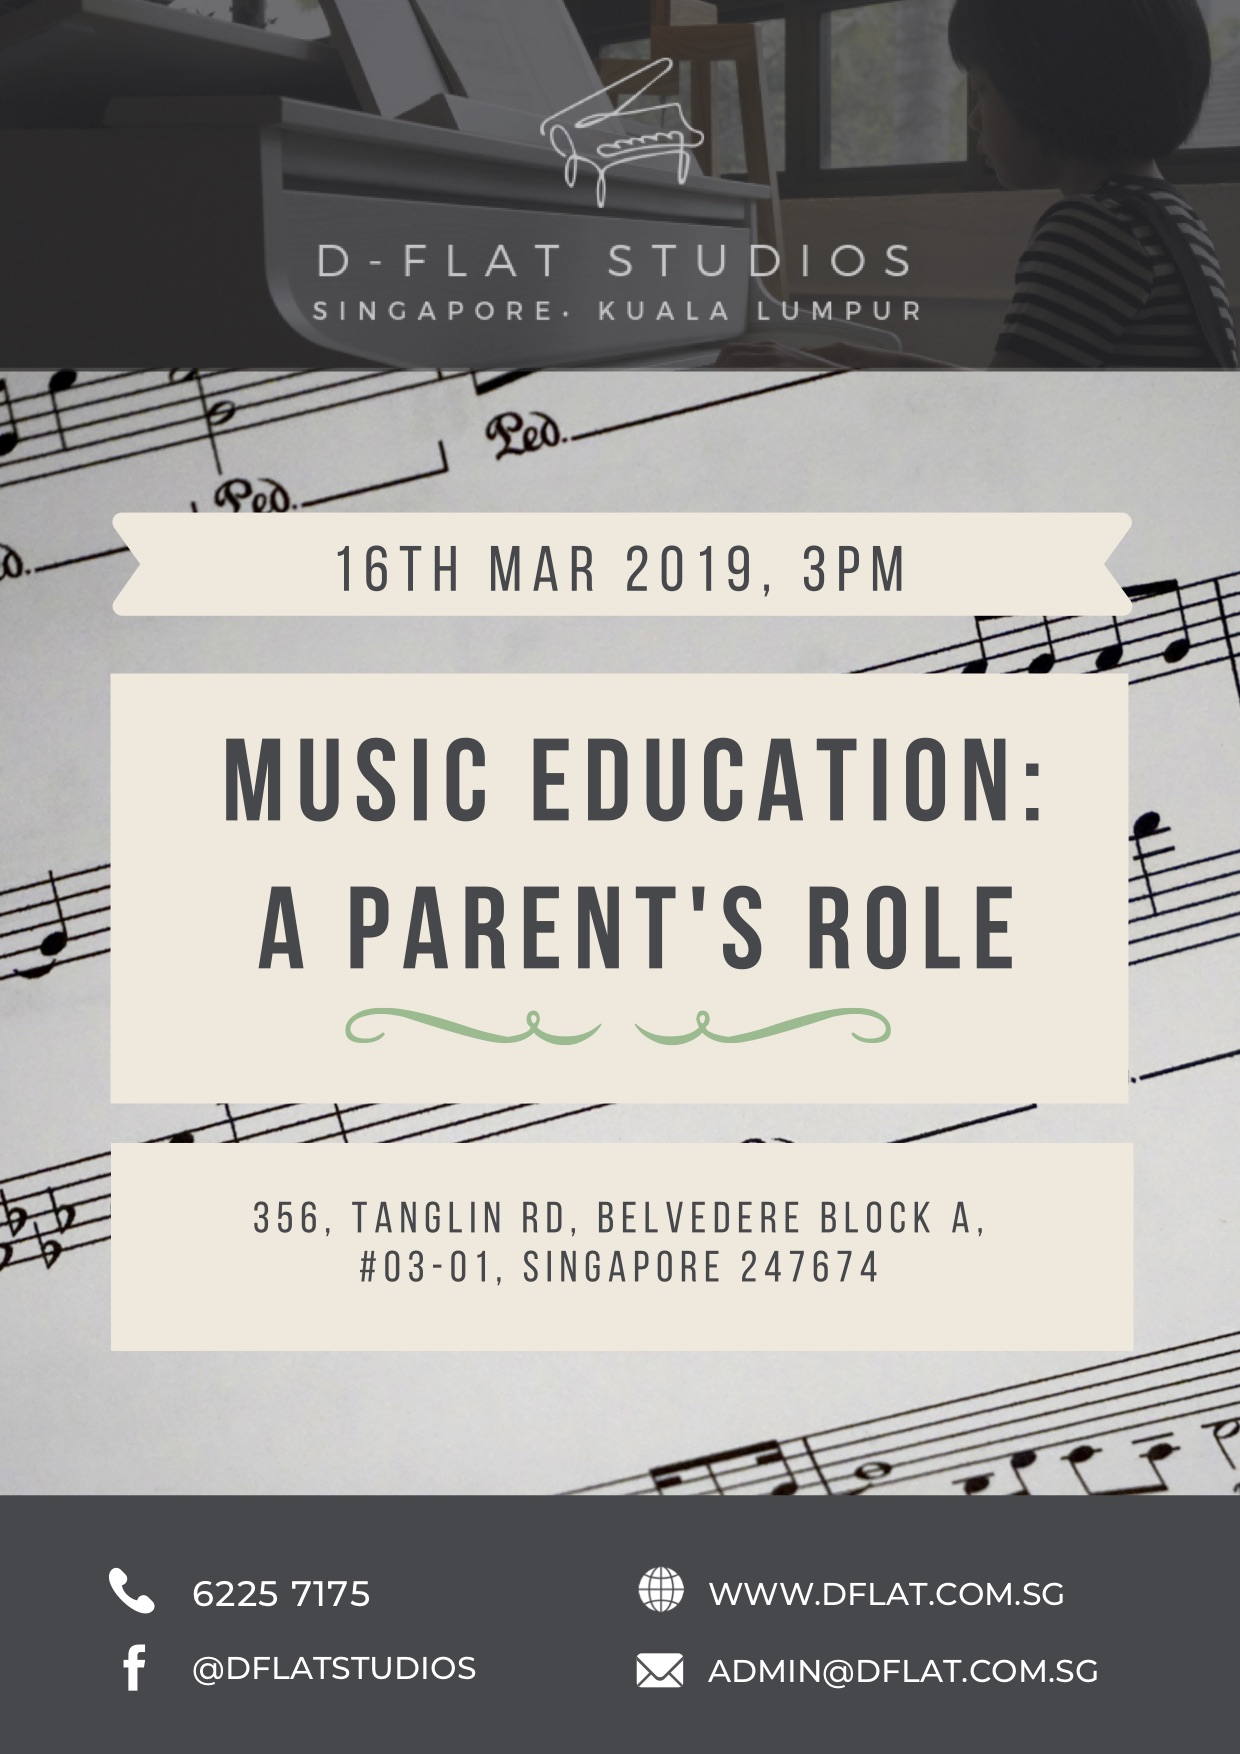 Music Education: A Parent's Role - 16th Mar 2019